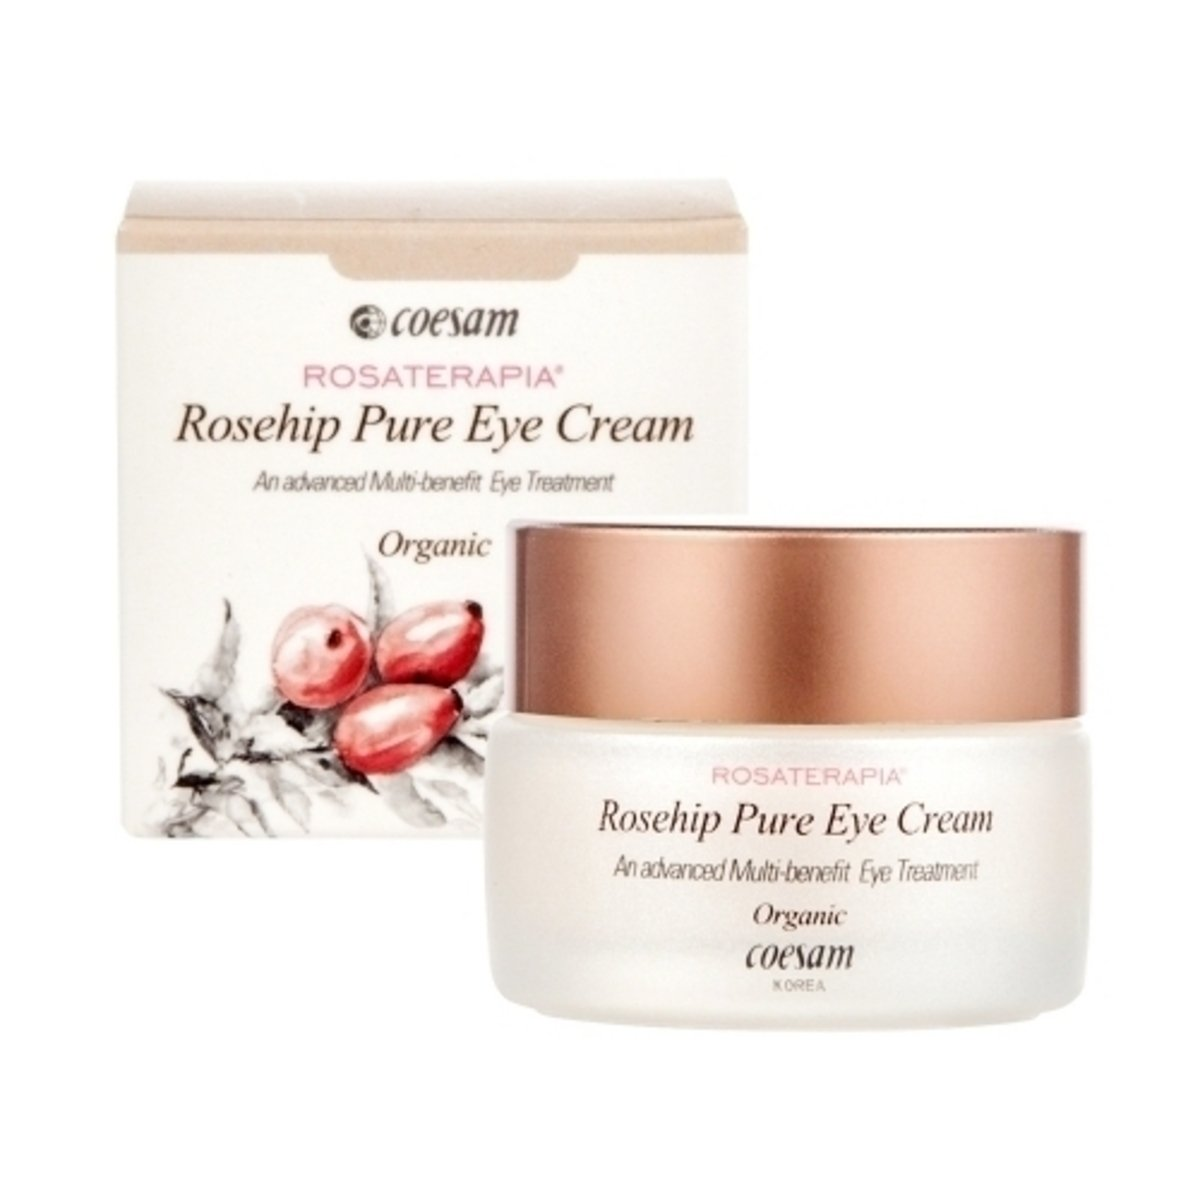 Rosehip Pure Eye Cream (Organic)